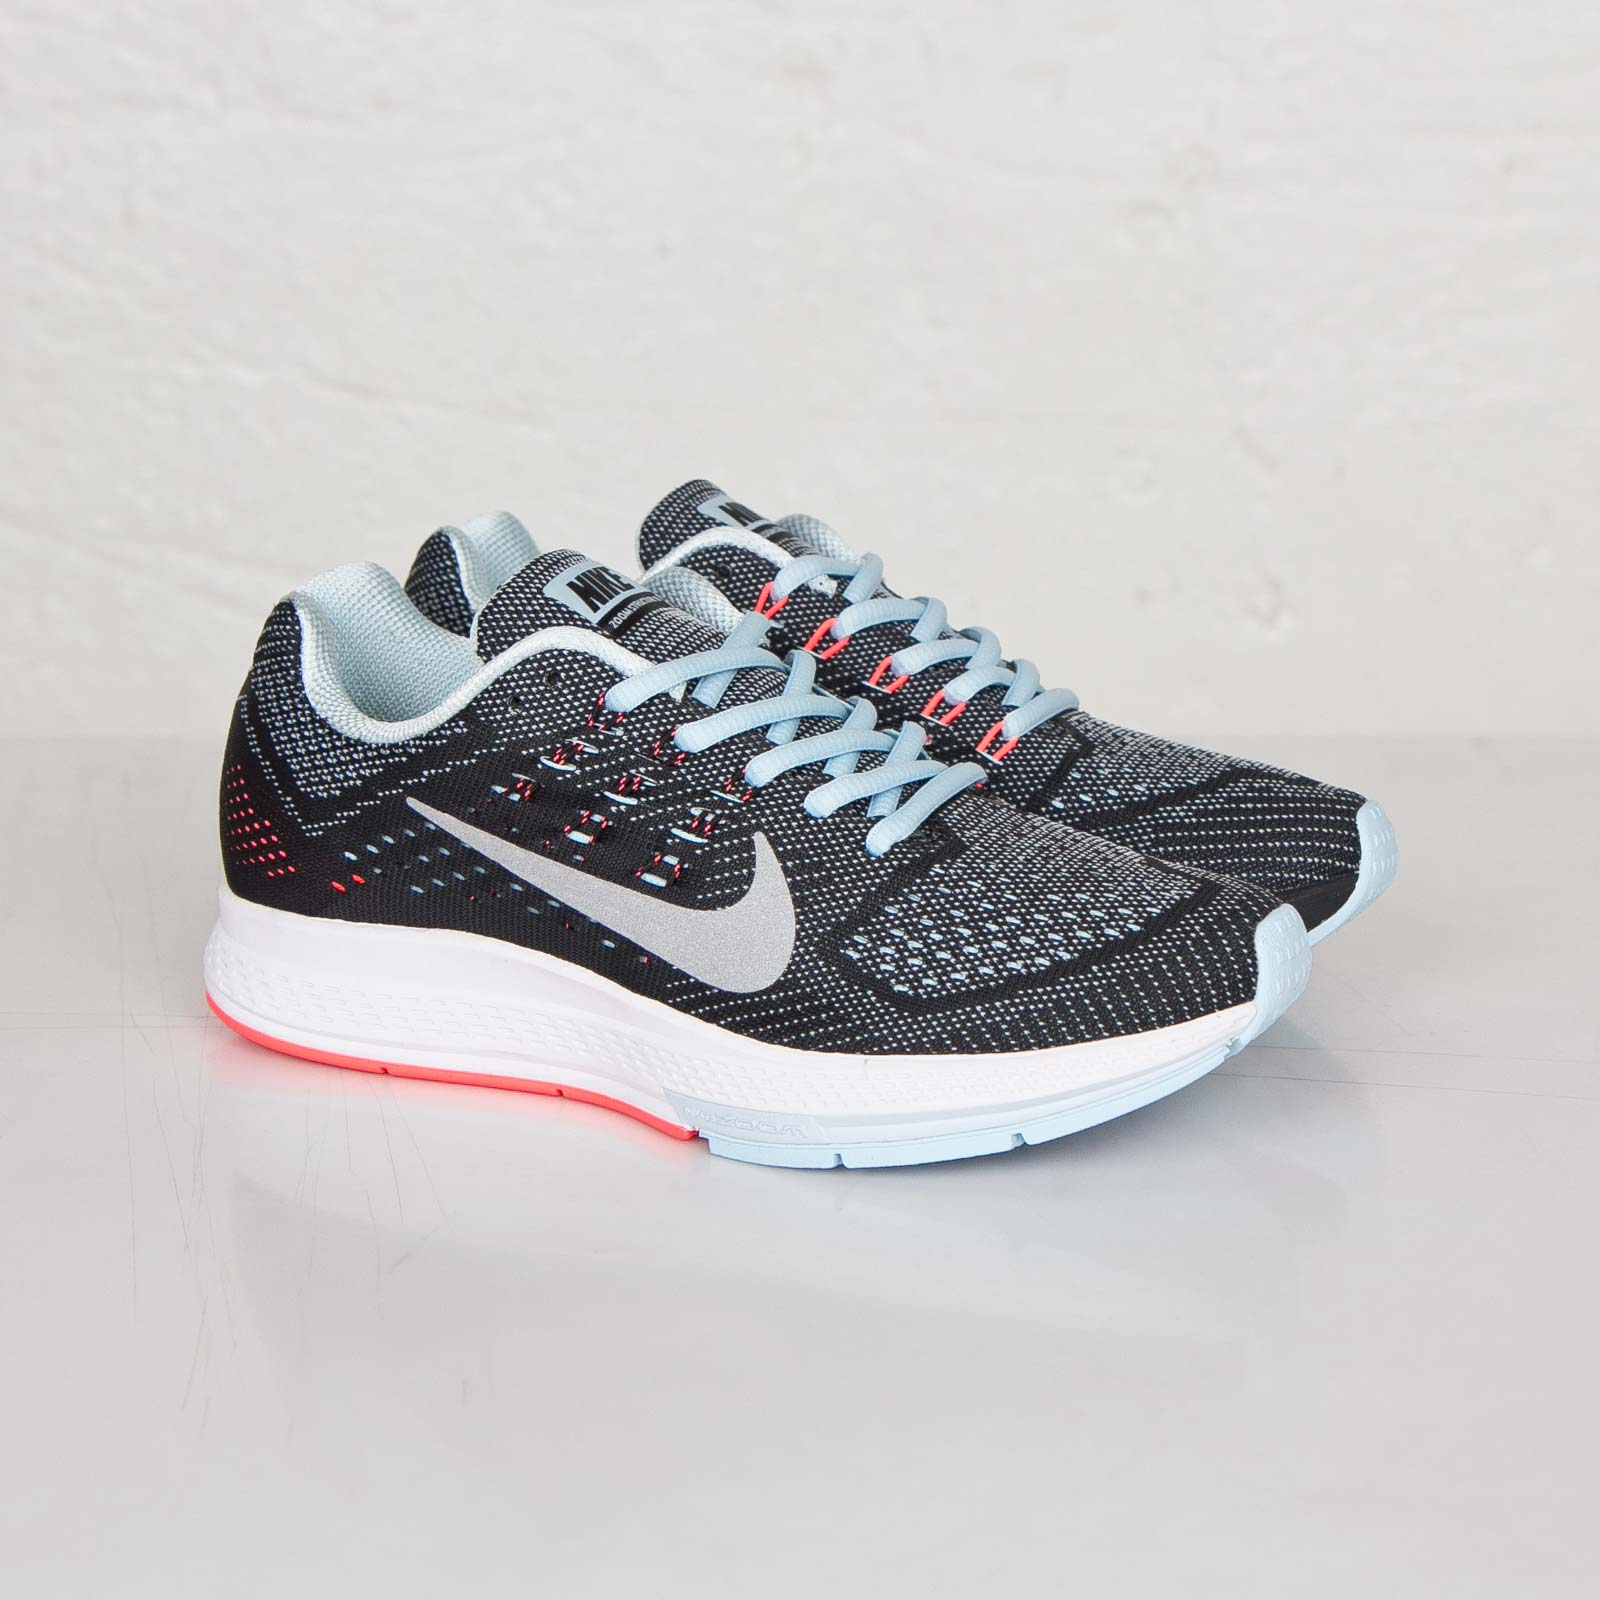 4b599dba1f05 Nike W Air Zoom Structure 18 - 683737-401 - Sneakersnstuff ...